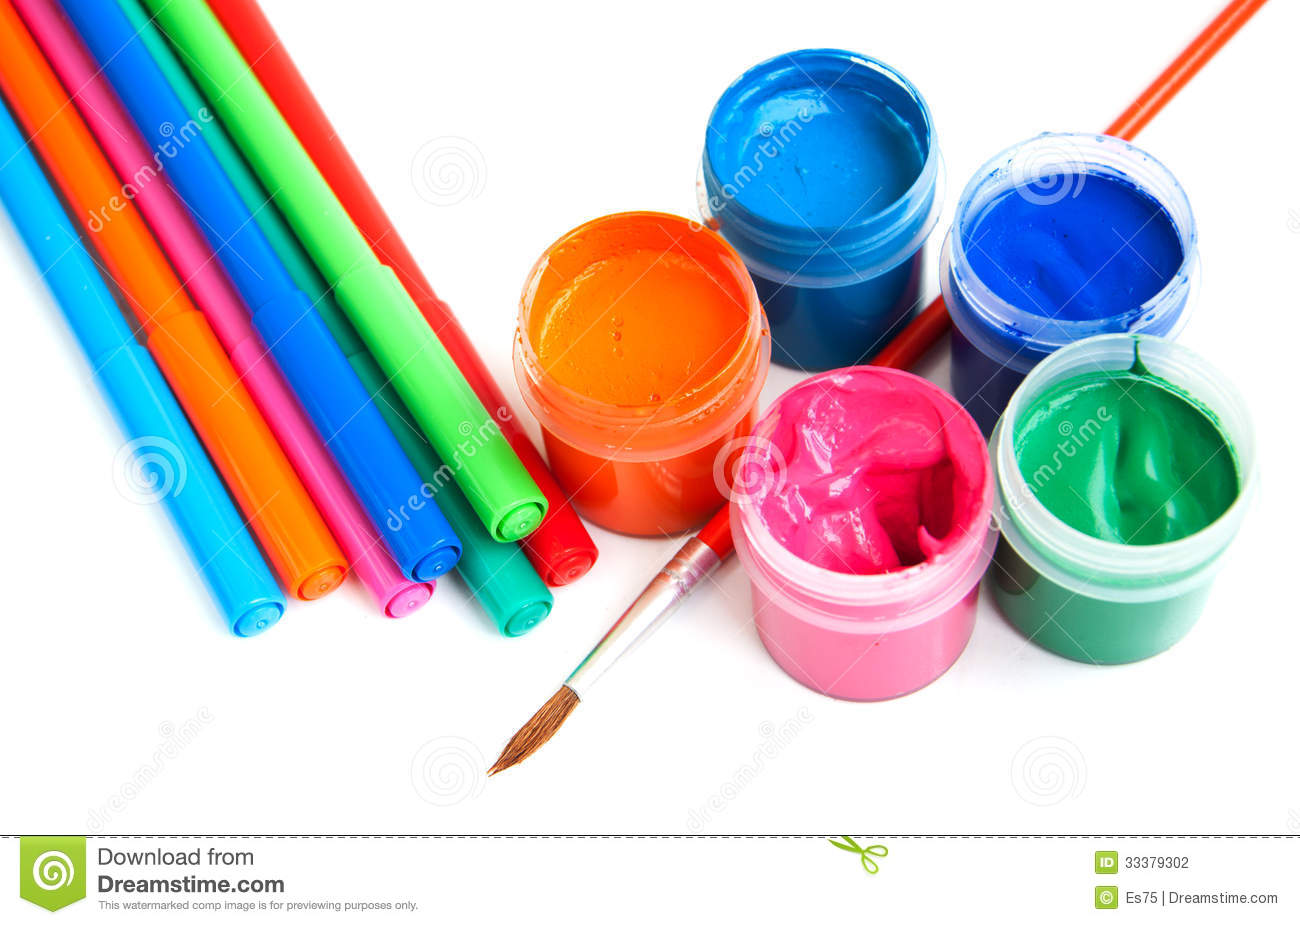 Art And Craft Equipment Stock Photography - Image: 33379302